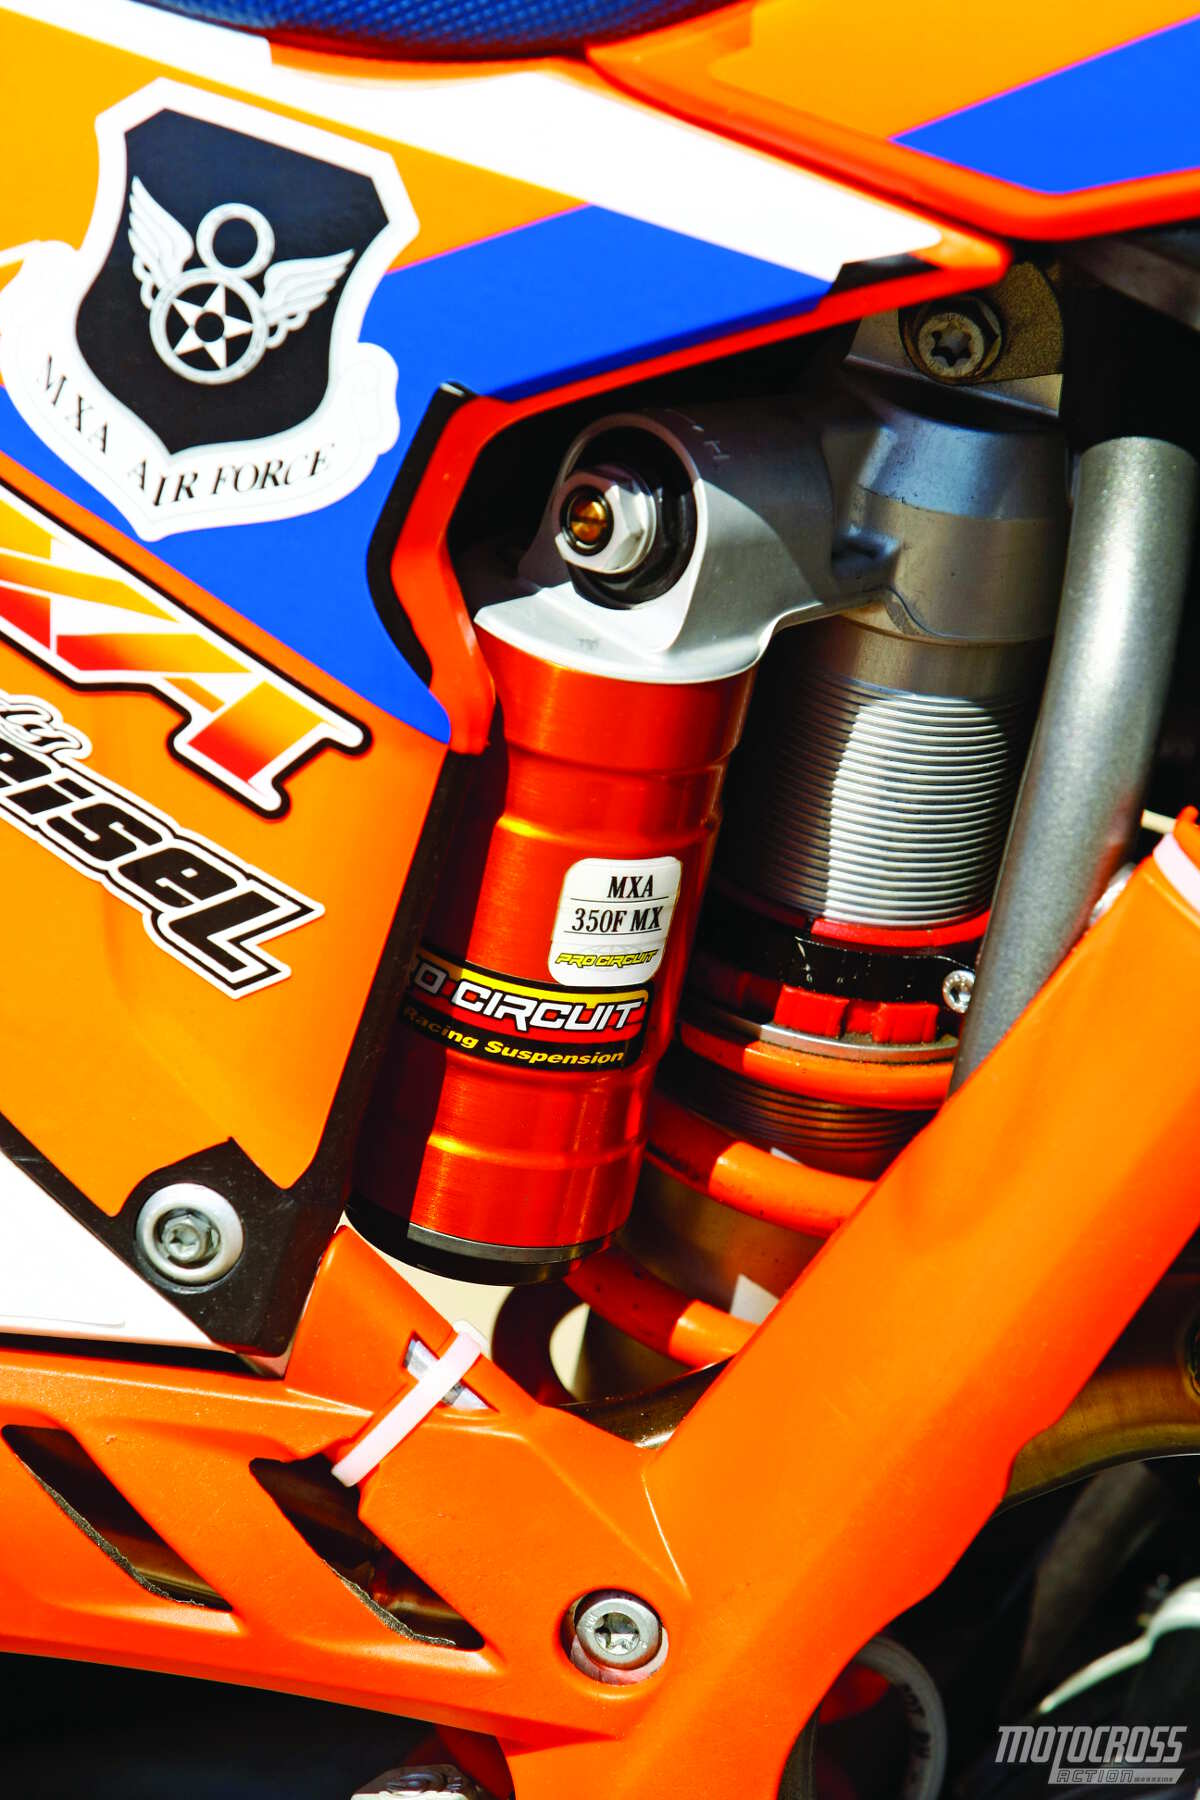 UP CLOSE & PERSONAL WITH JODY'S KTM 350SXF | Motocross